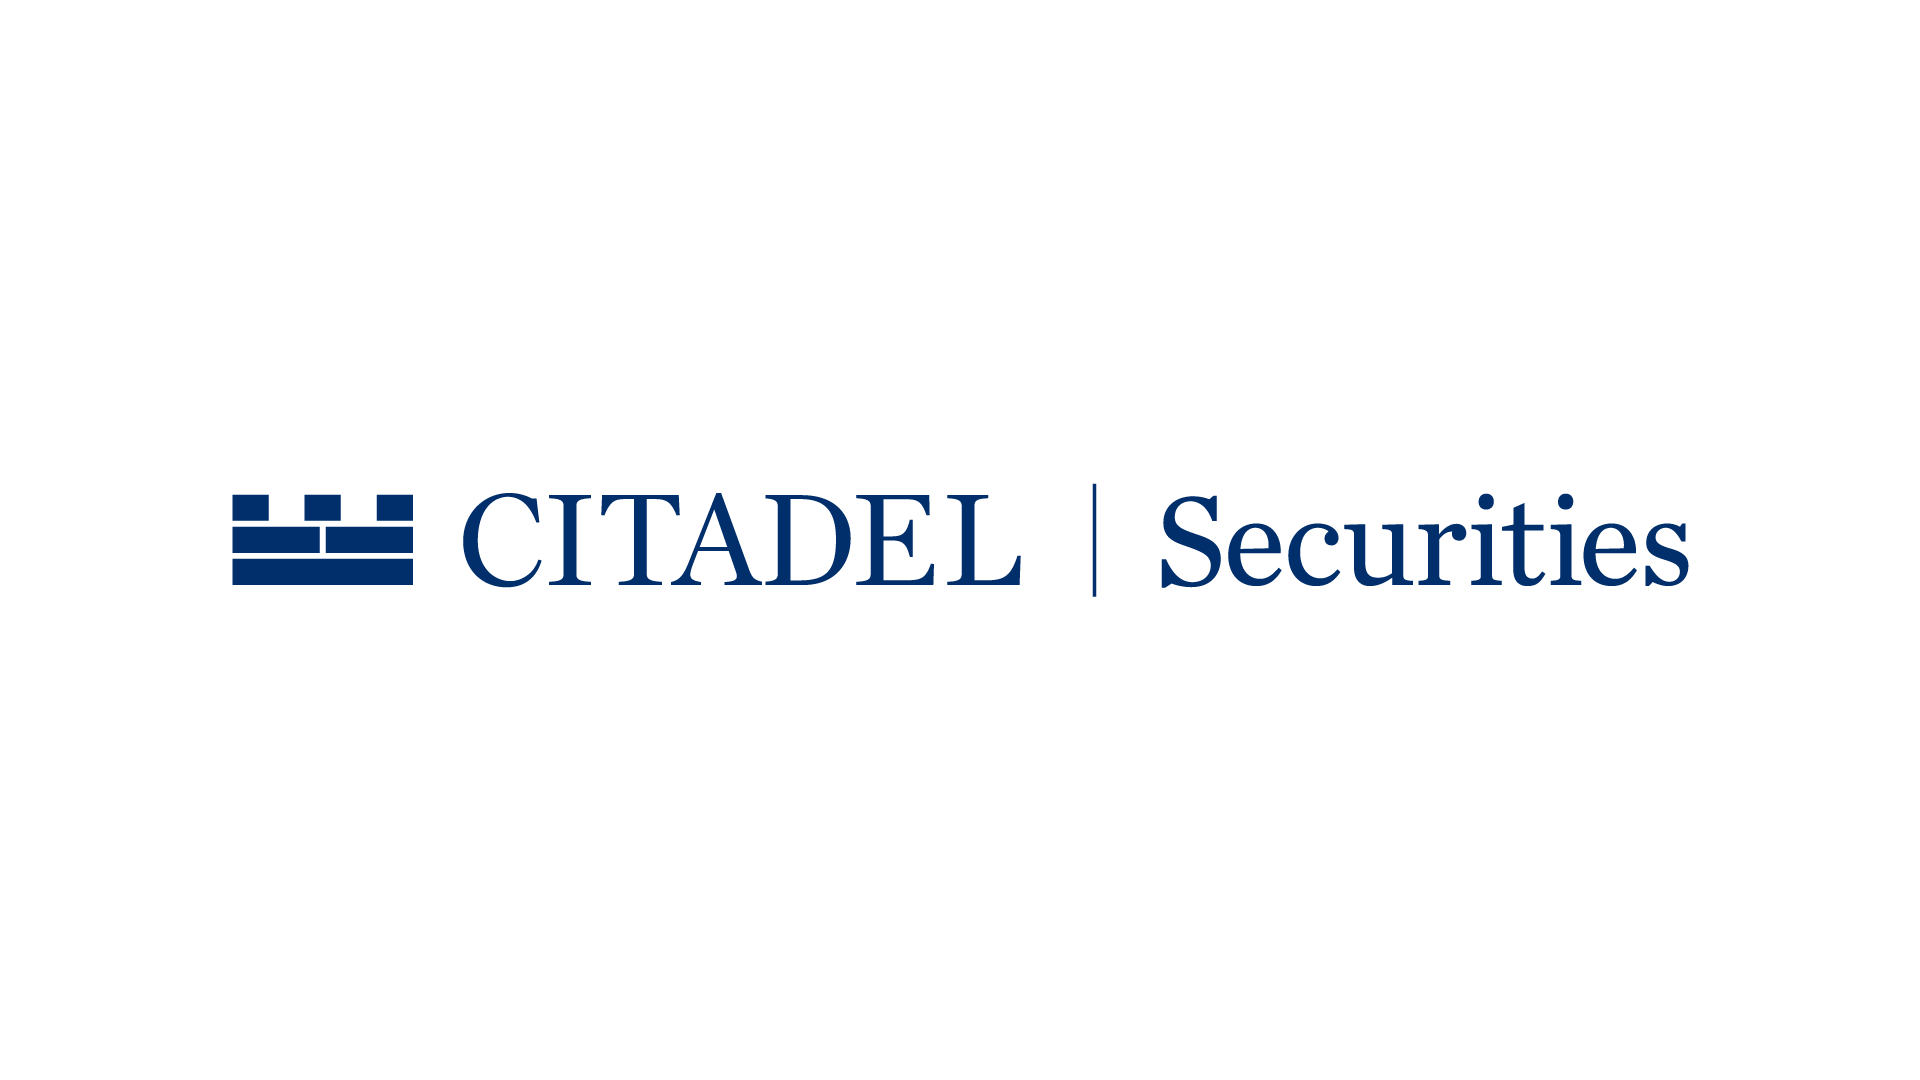 Citadel Securities Opens Dublin Office - My Grand Canal